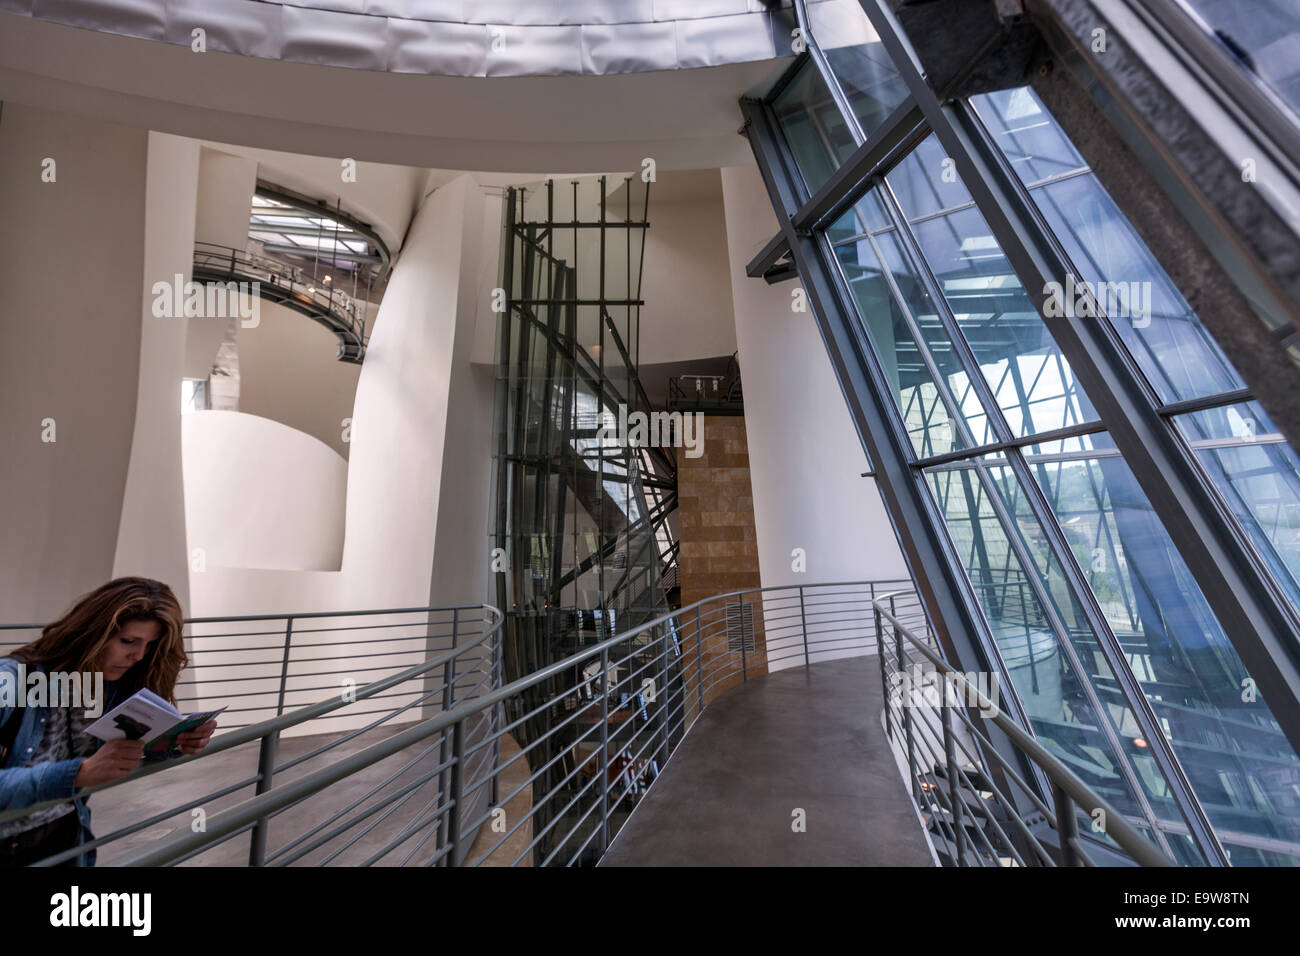 Interior of the guggenheim museum bilbao designed by stock photo royalty free image 74929141 for Guggenheim museum bilbao interior